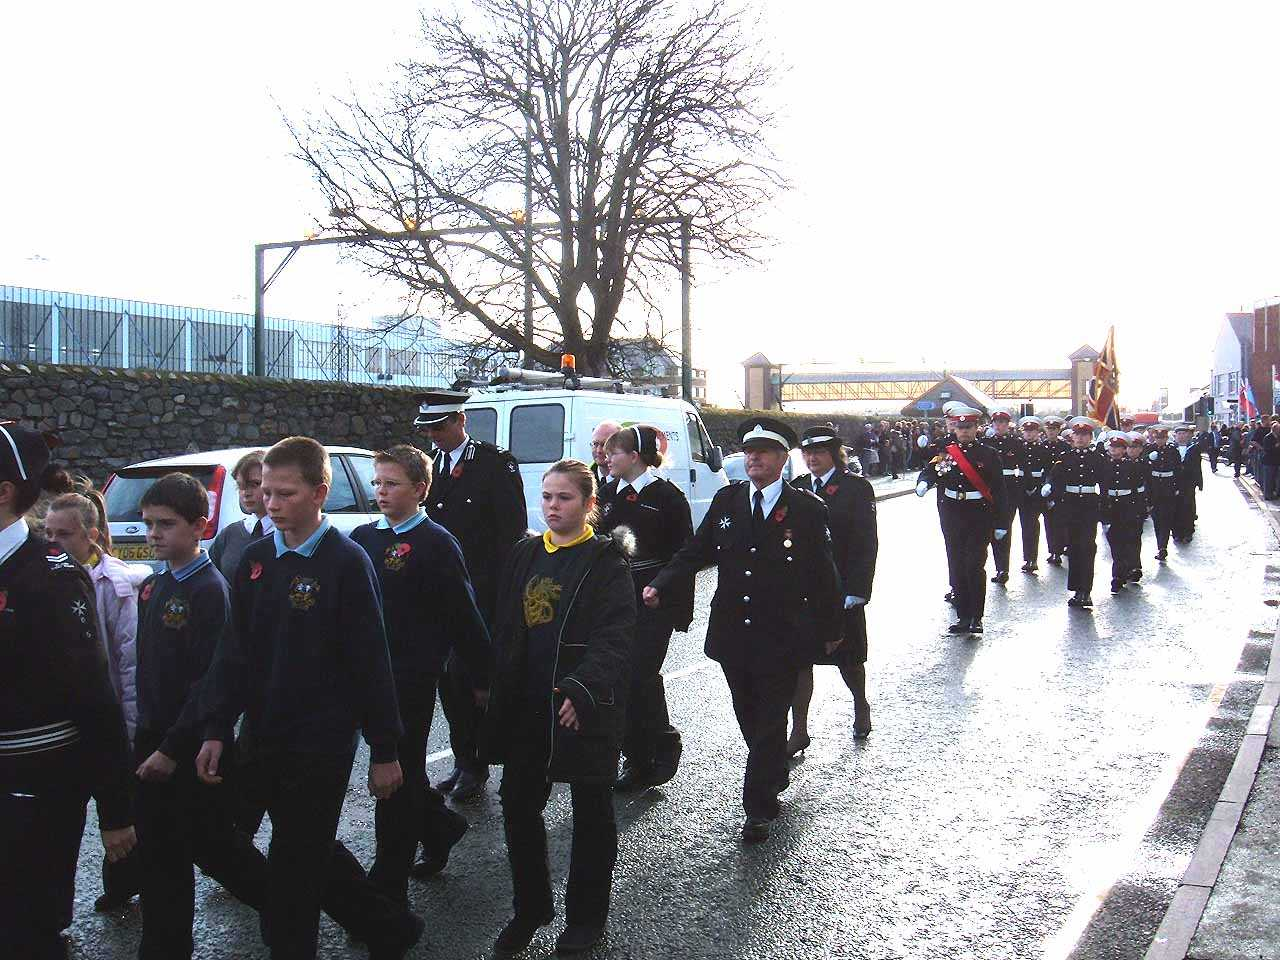 Anglesey, Holyhead, Remembrance Sunday 2006 - St John's Ambulance and Children Marching